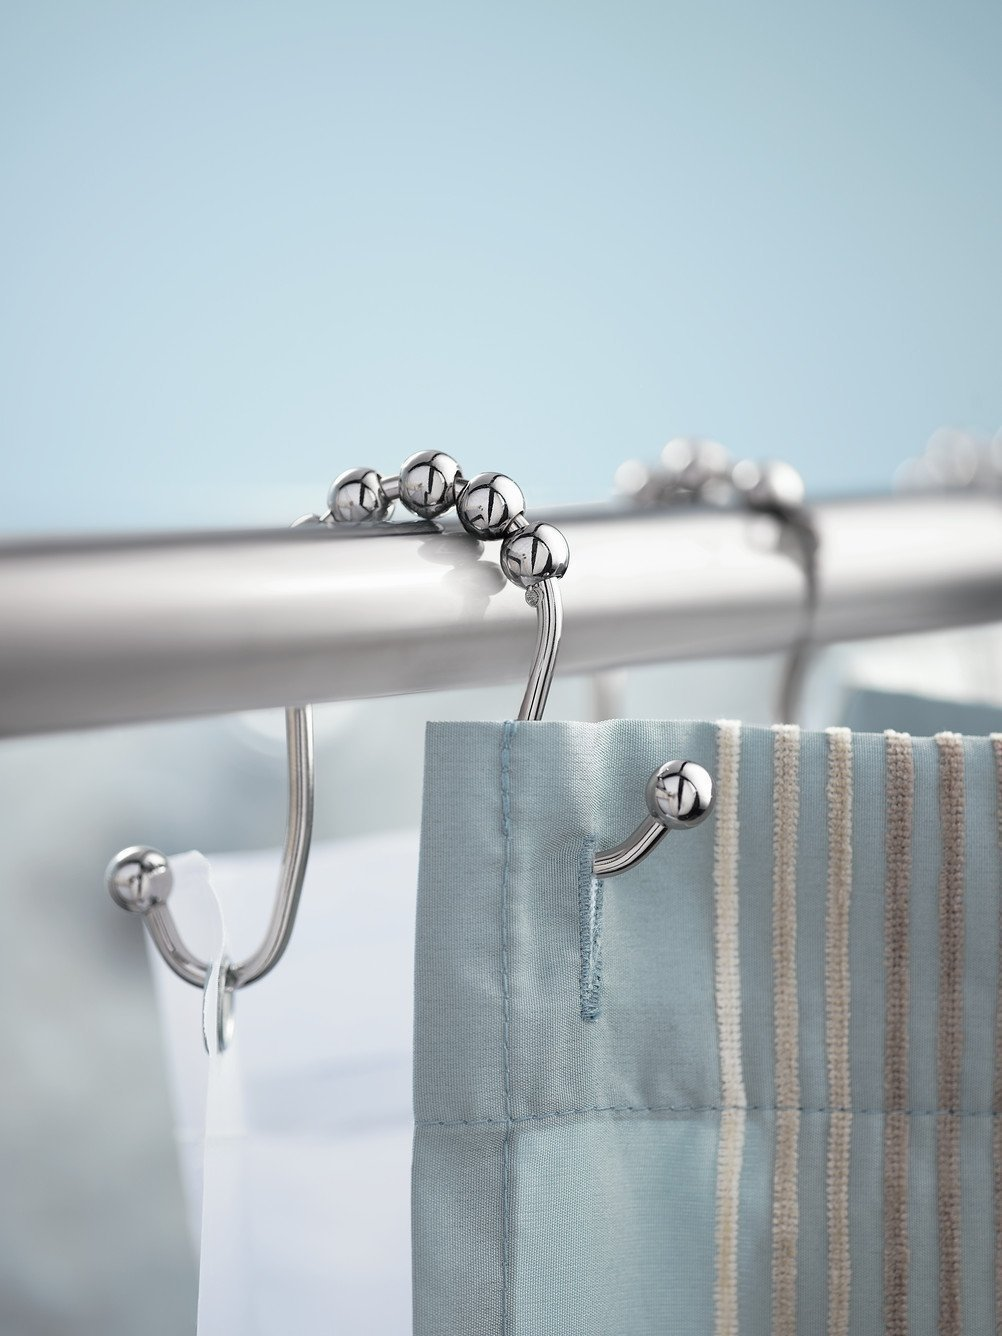 Wimaha Rustproof Shower Curtain Rings Stainless Steel Heavy Duty Roller Double Glide Hooks For Bathroom Rods Curtains Liners Polished Chrome